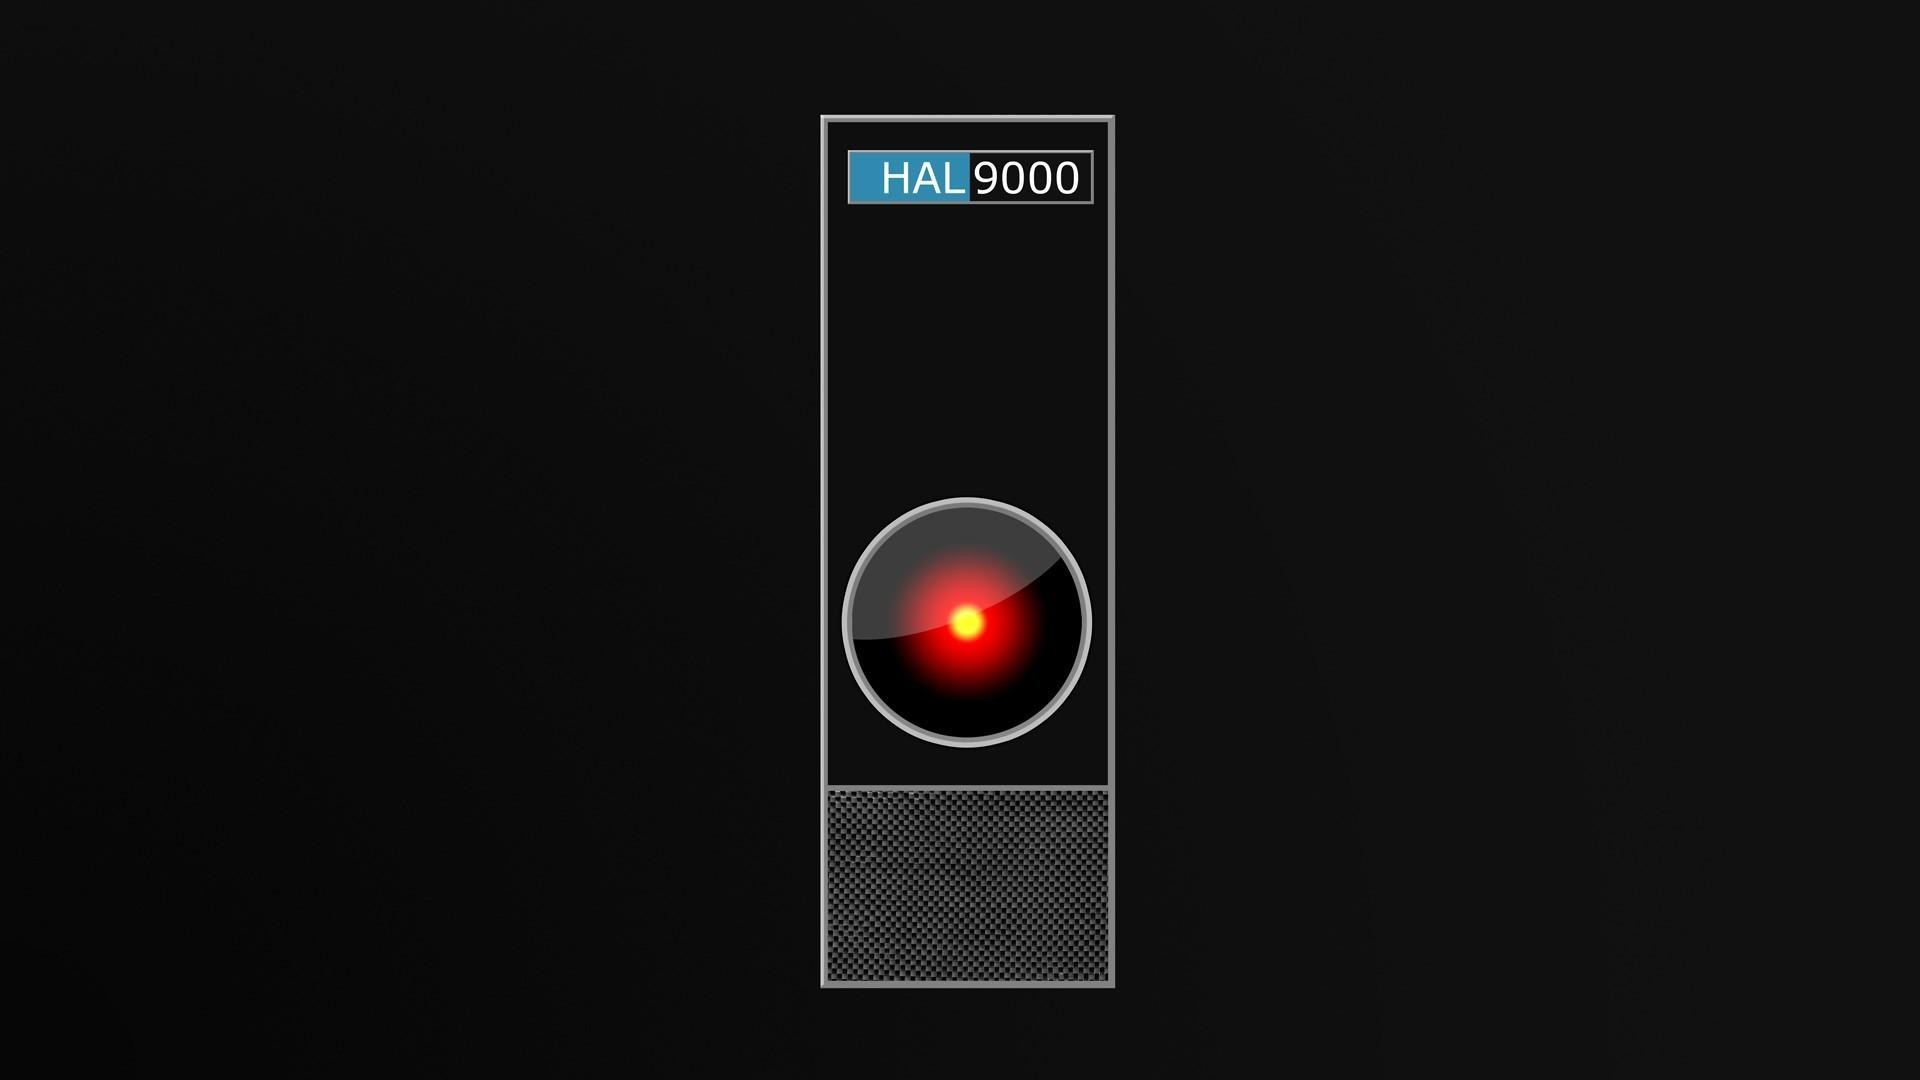 2001: a space odyssey hal9000 logic memory systems wallpaper   (59102)